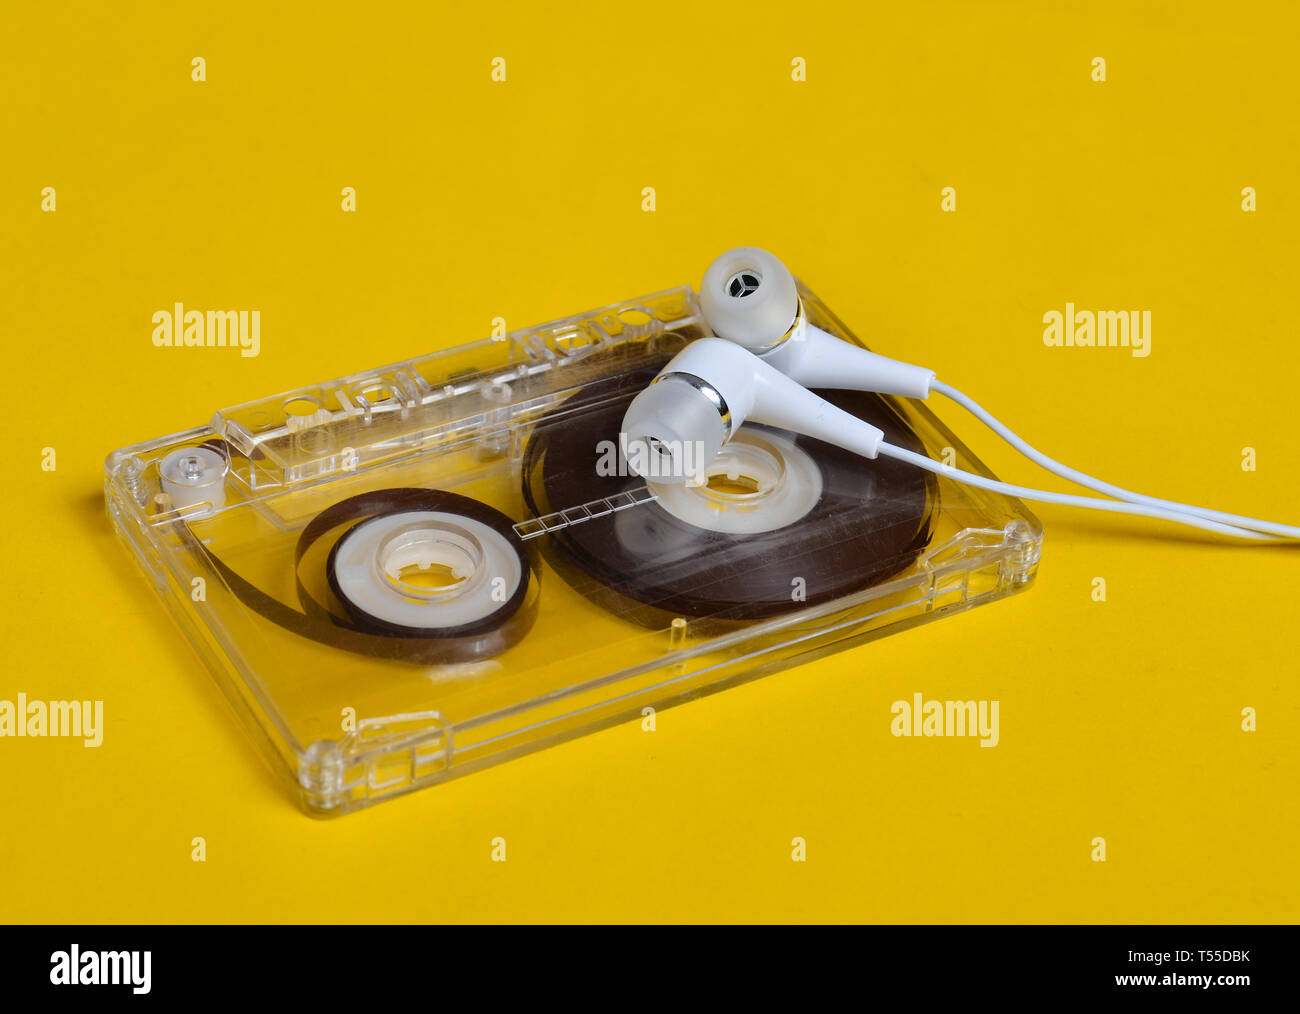 Retro technology. Plastic transparent audio cassette and white vacuum headphones on a bright yellow background. 80s. Stock Photo